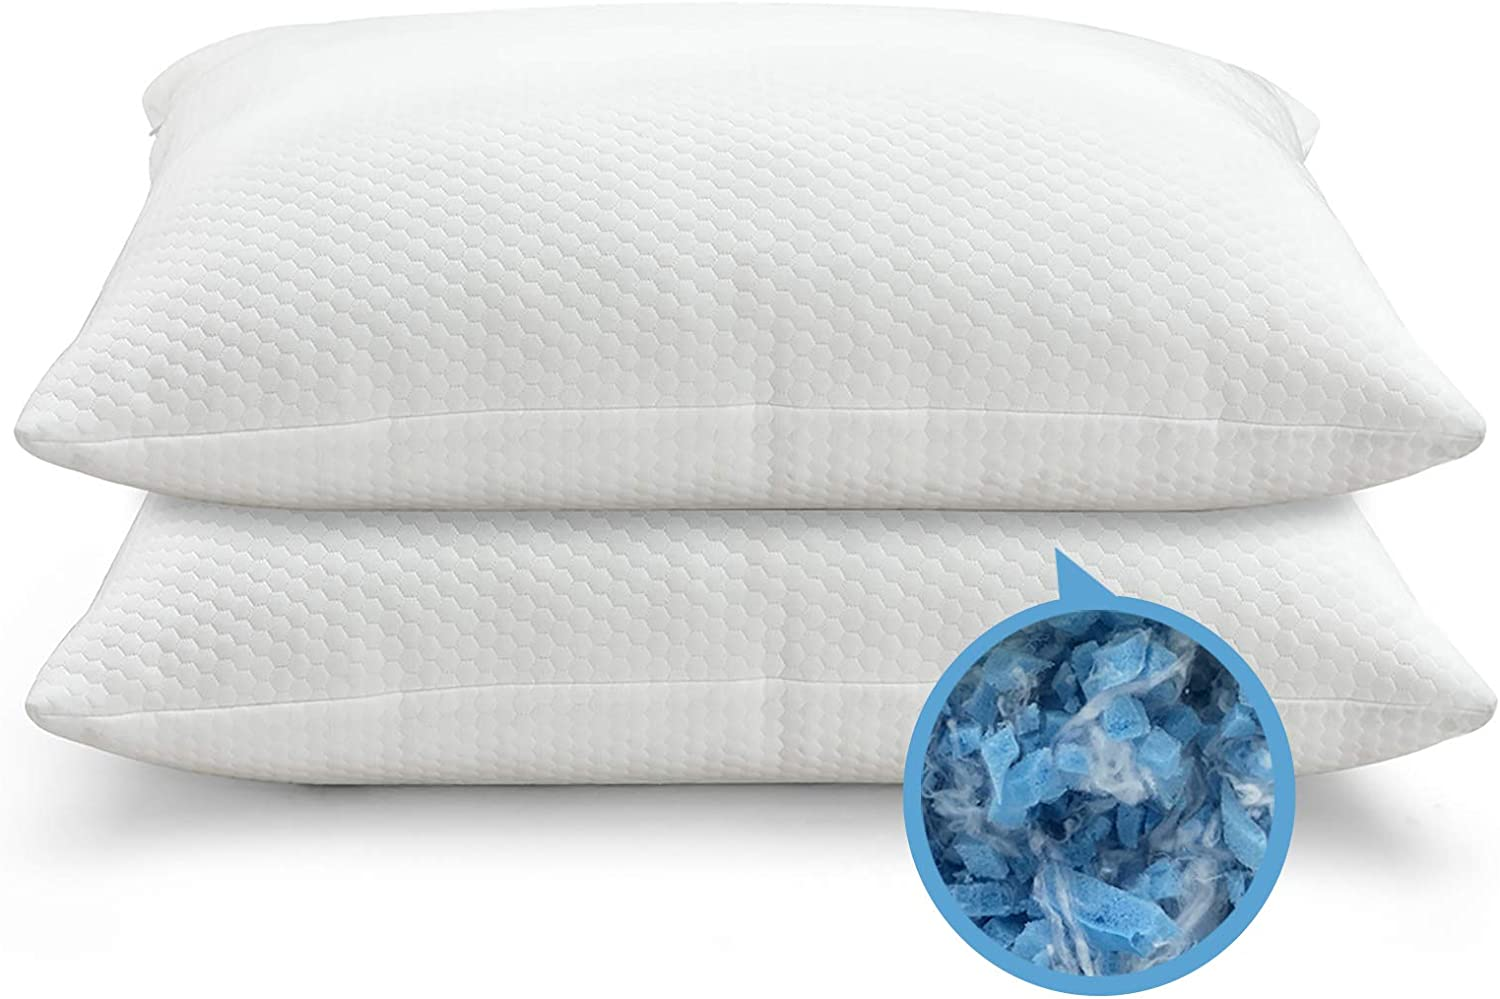 Pillows for Sleeping - 2 Pack OYT Cooling Shredded Memory Foam Bed Pillows Standard Size Set of 2, Adjustable Loft Bed Pillows with Washable Hypoallergenic Cover for Back and Side Sleeper